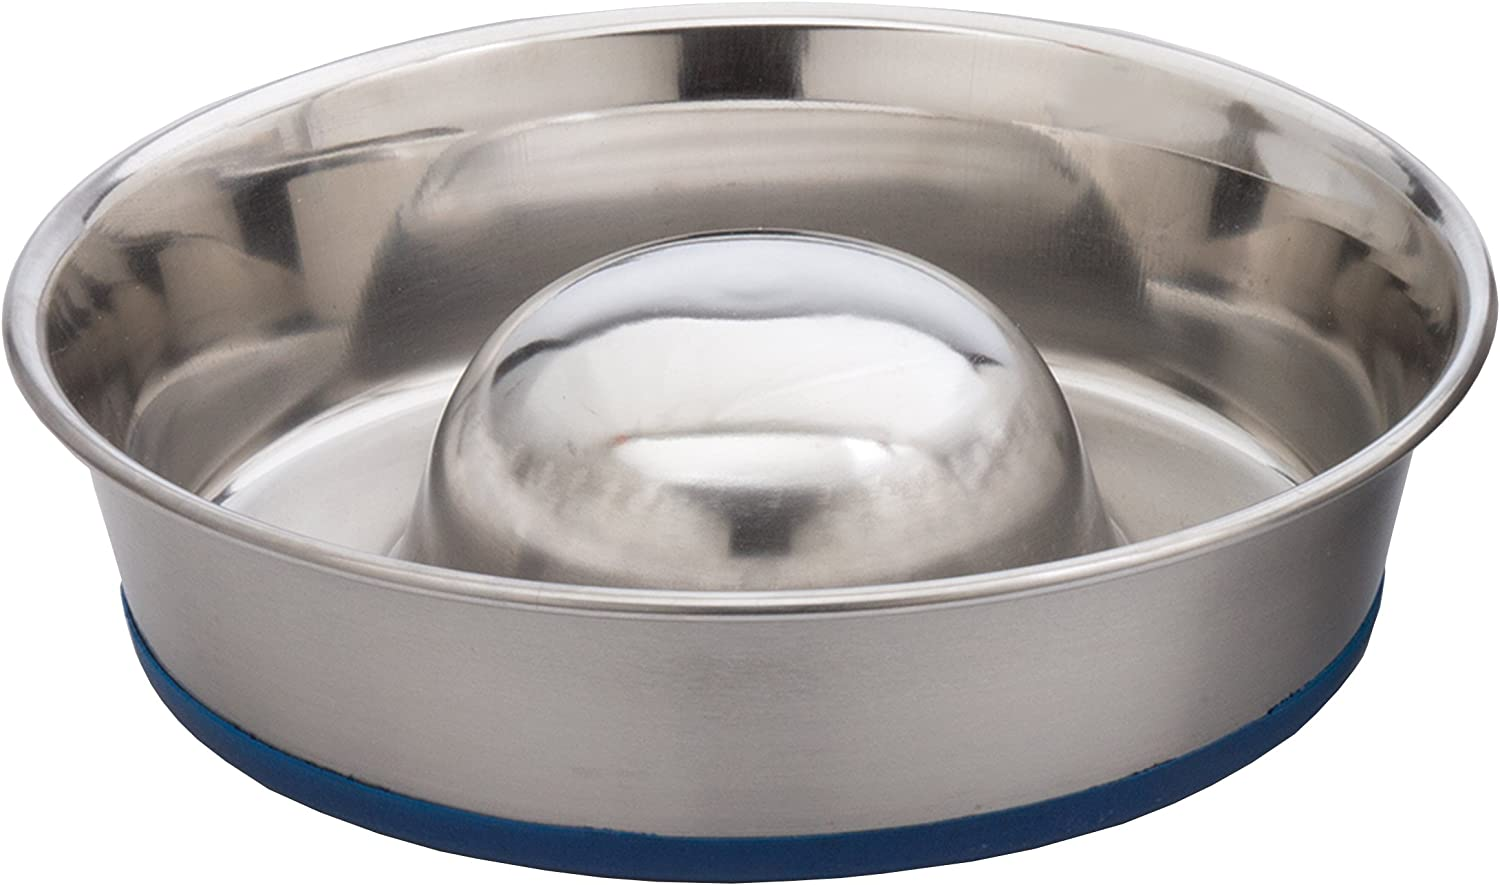 OurPets DuraPet Slow Feed Premium Stainless Steel Dog Bowl